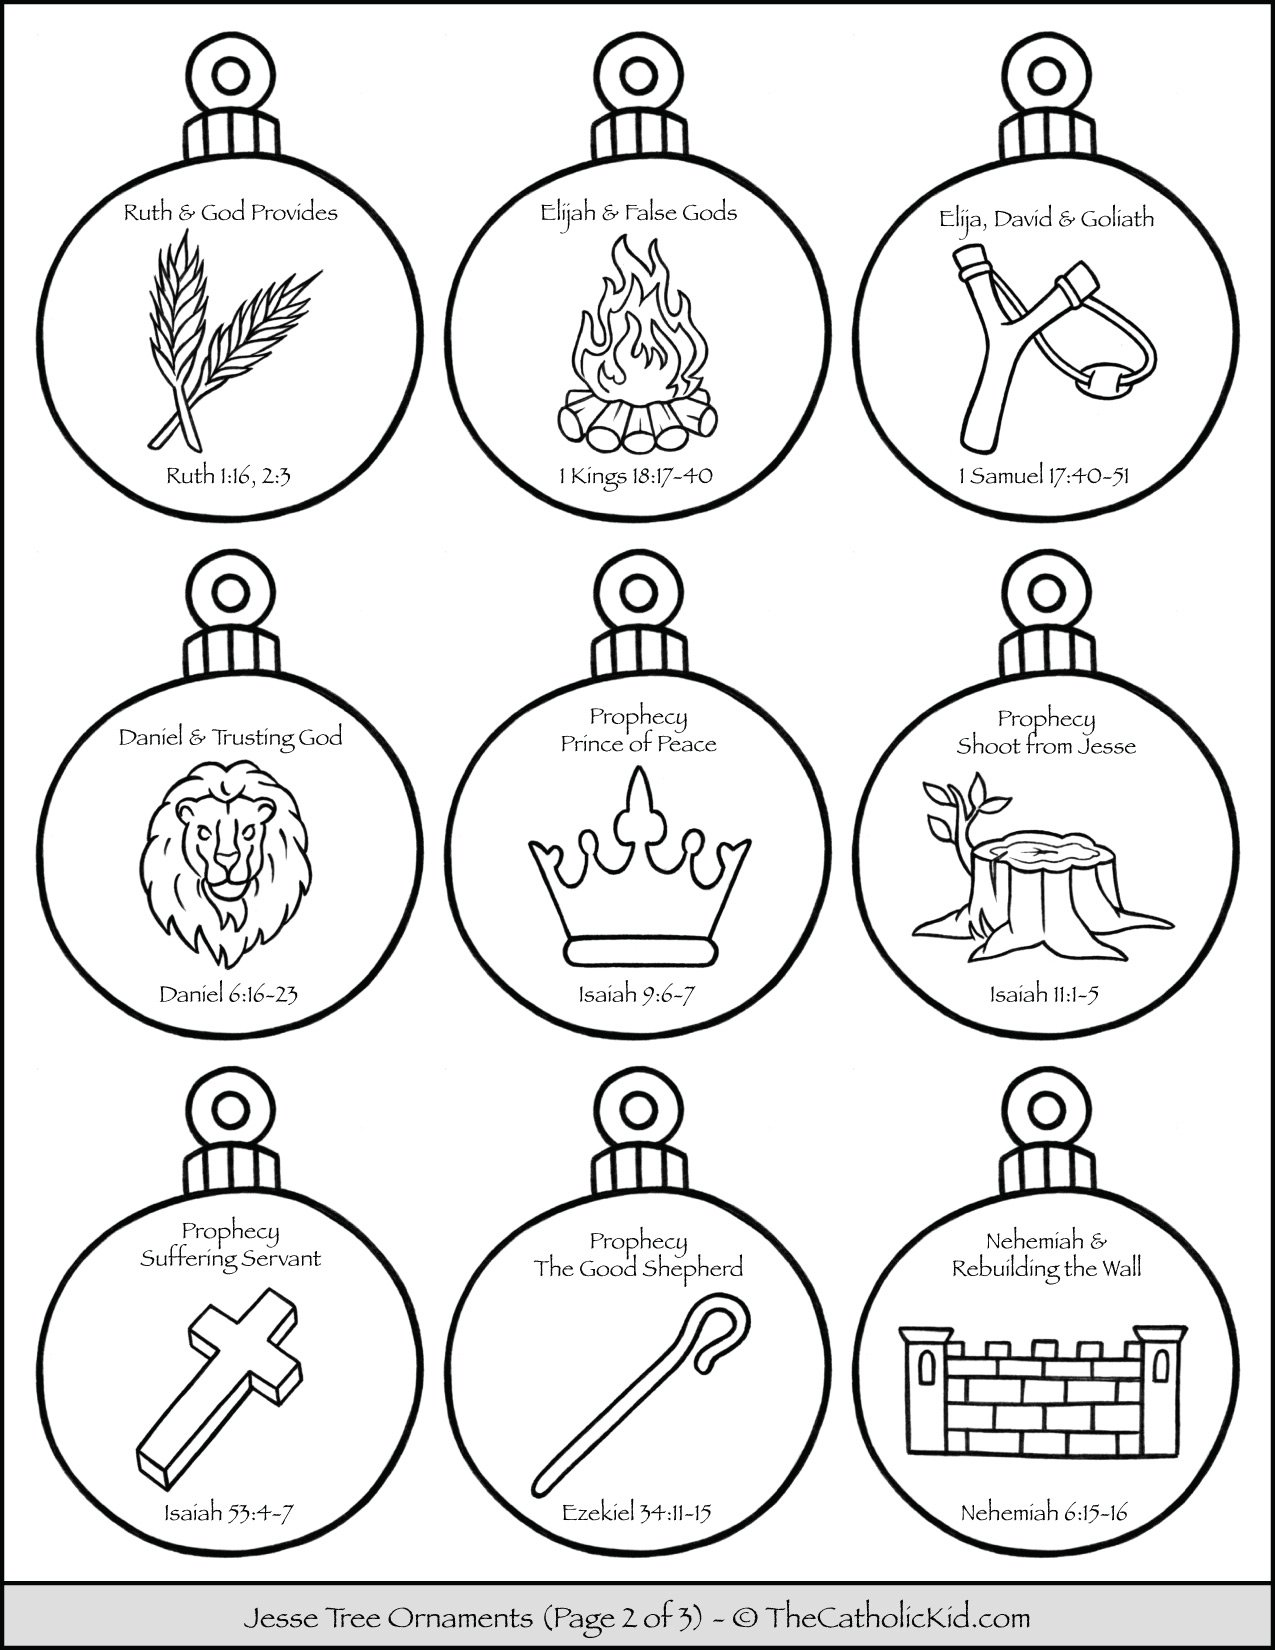 Jesse Tree Ornaments Printable Coloring Page 2